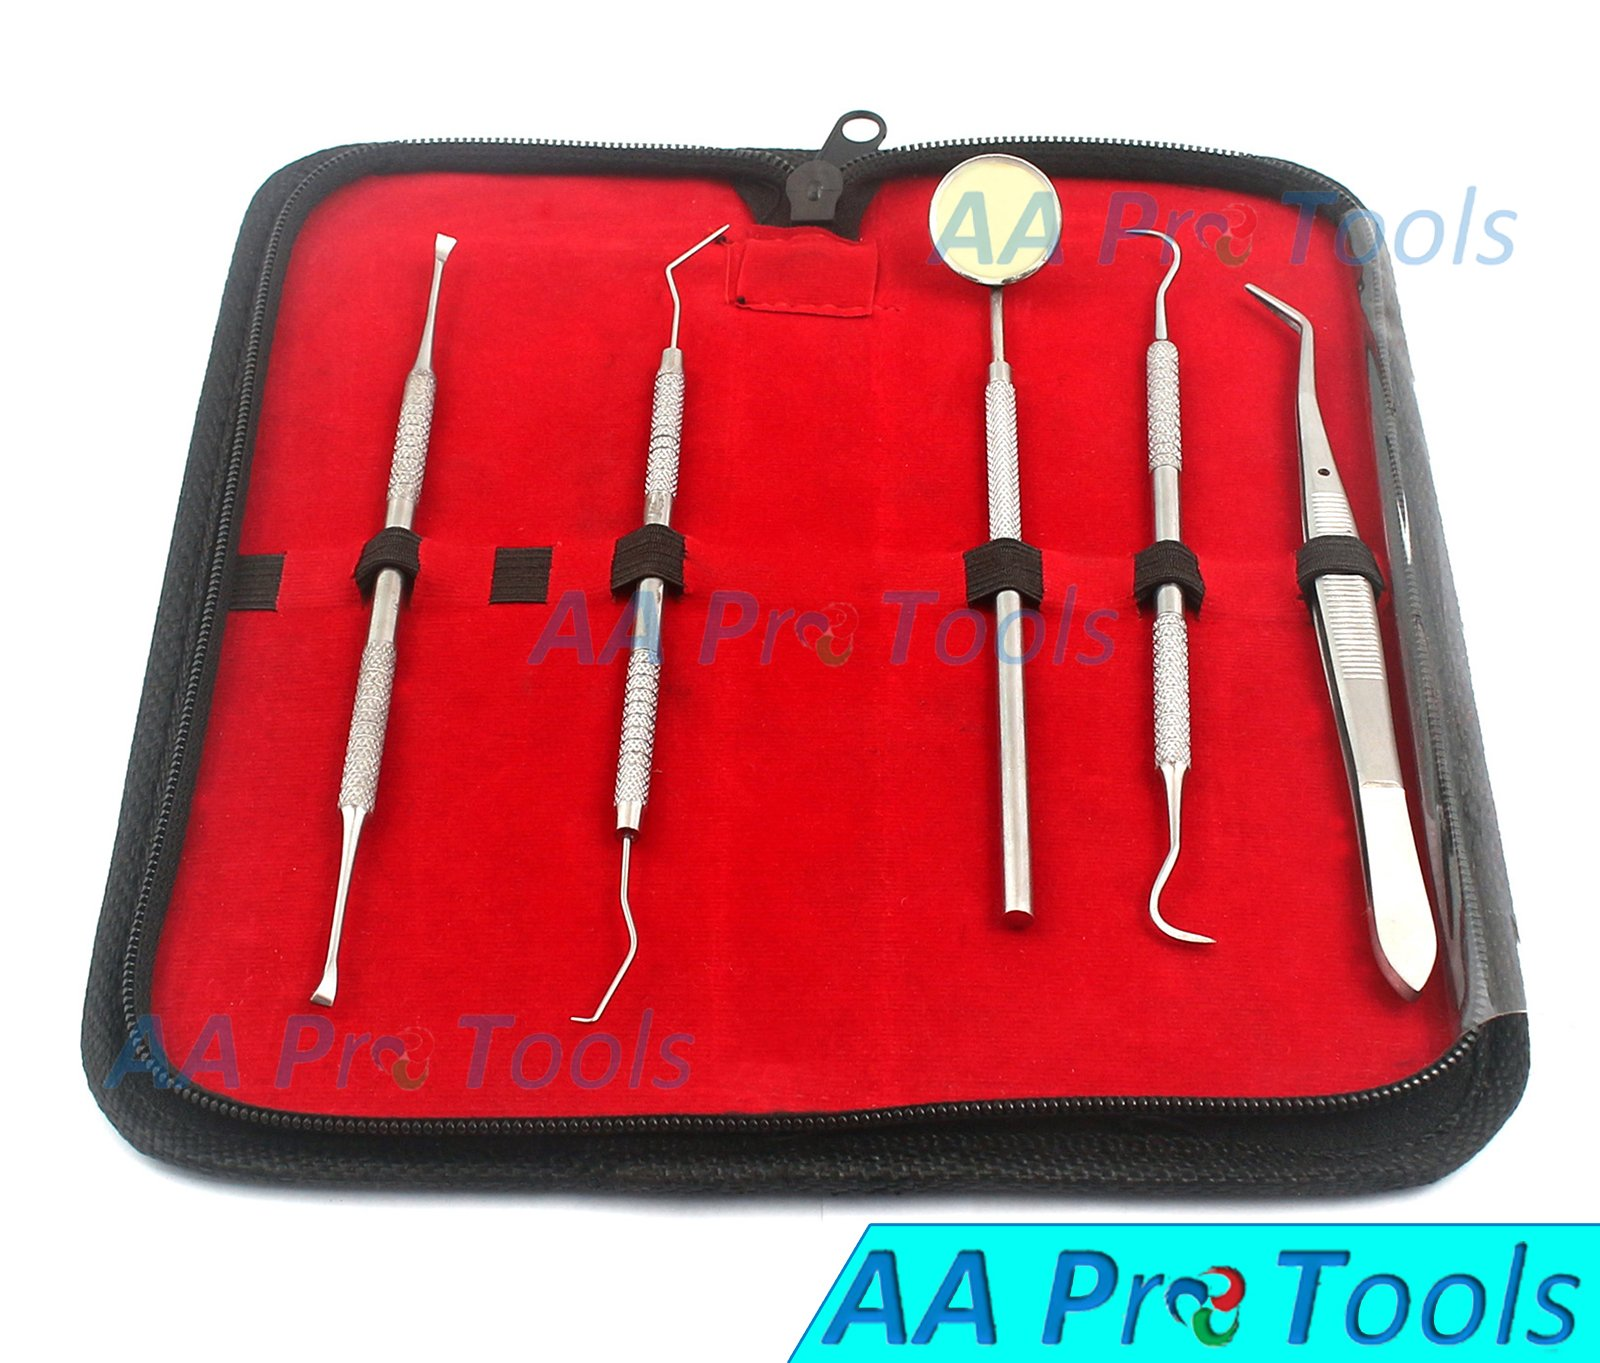 DENTAL TOOL KIT BY AA PRO - DENTAL HYGIENE KIT | INCLUDES DENTAL PICK, TARTER SCRAPER/SCALING INSTRUMENT, TWEEZERS, MOUTH MIRROR - PROFESSIONAL GRADE DENTIST APPROVED TOOLS A+ QUALITY